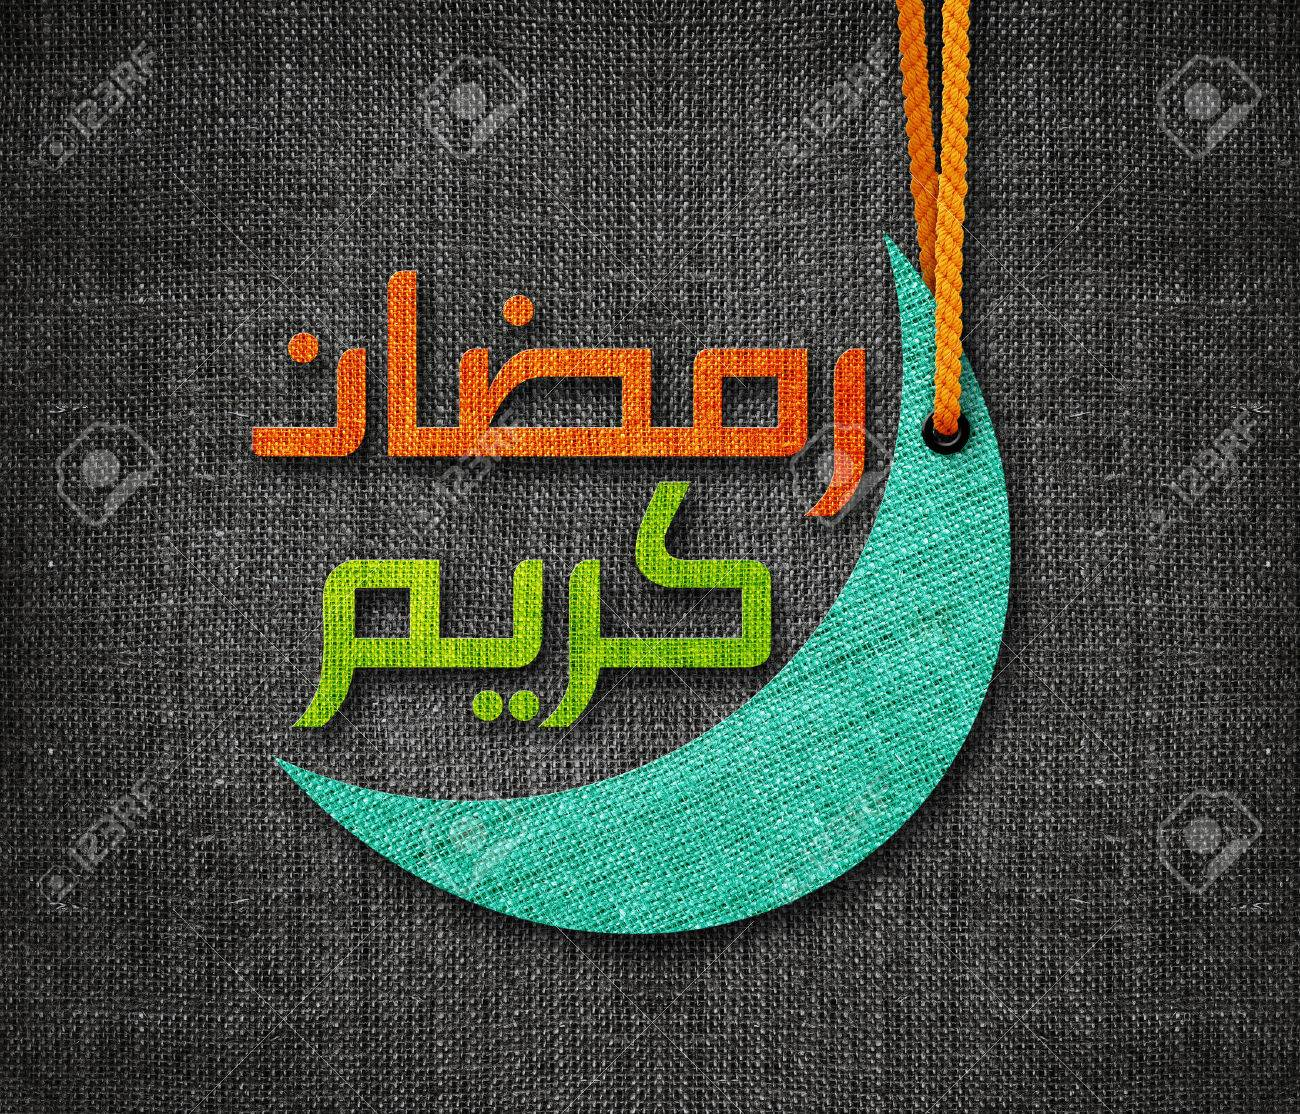 The holy month of muslim community festival ramadan kareem and stock photo the holy month of muslim community festival ramadan kareem and eid al fitr greeting card with arabic calligraphy of text ramadan kareem and m4hsunfo